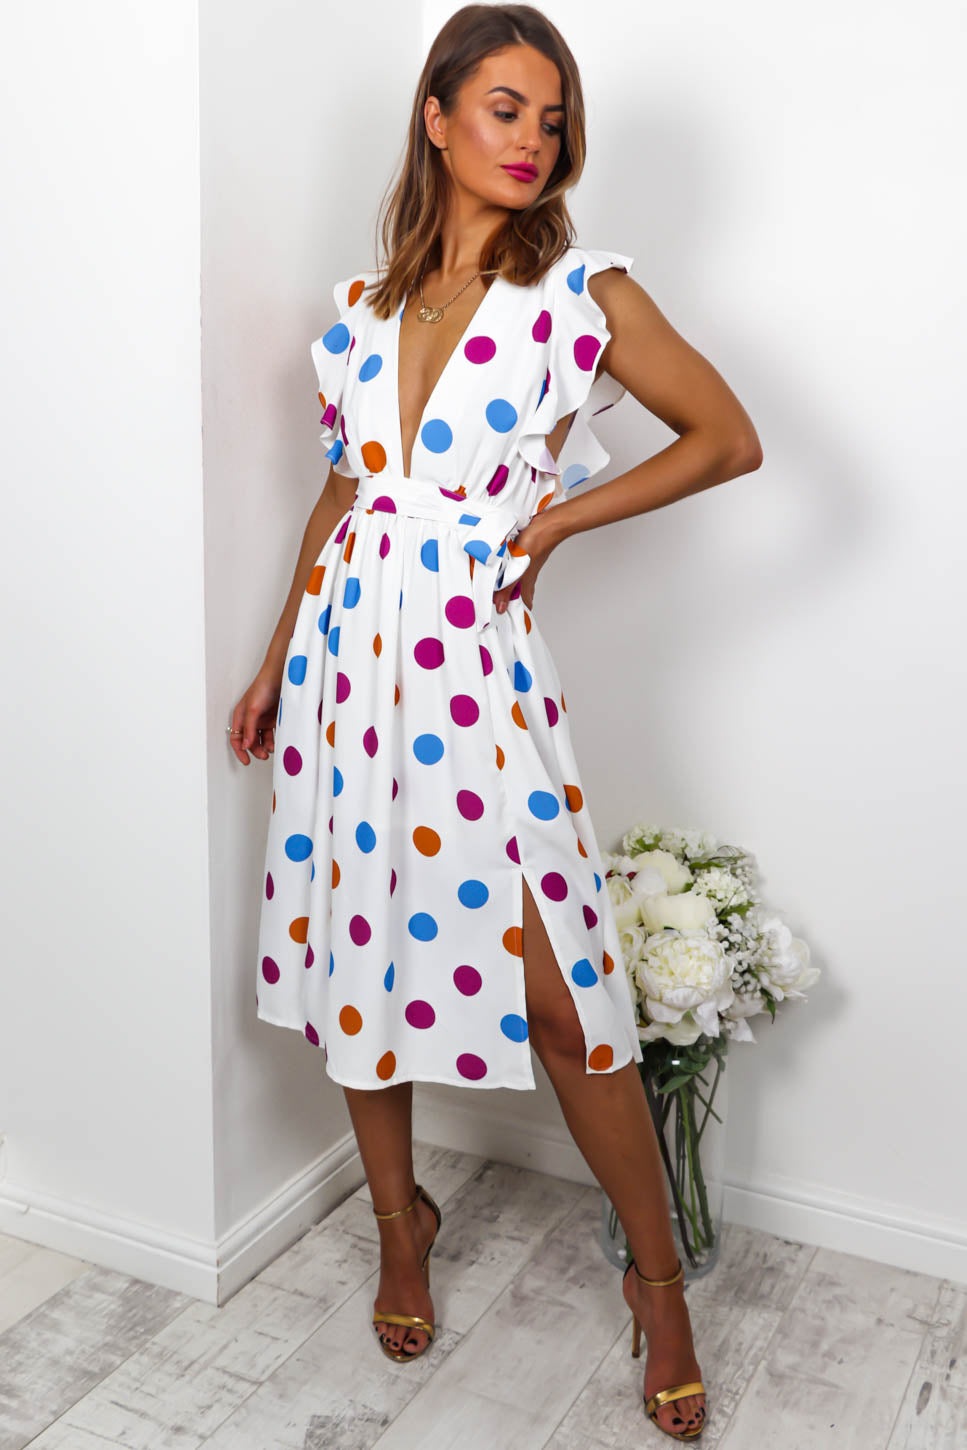 Swing Dance - Midi Dress In WHITE/SPOT